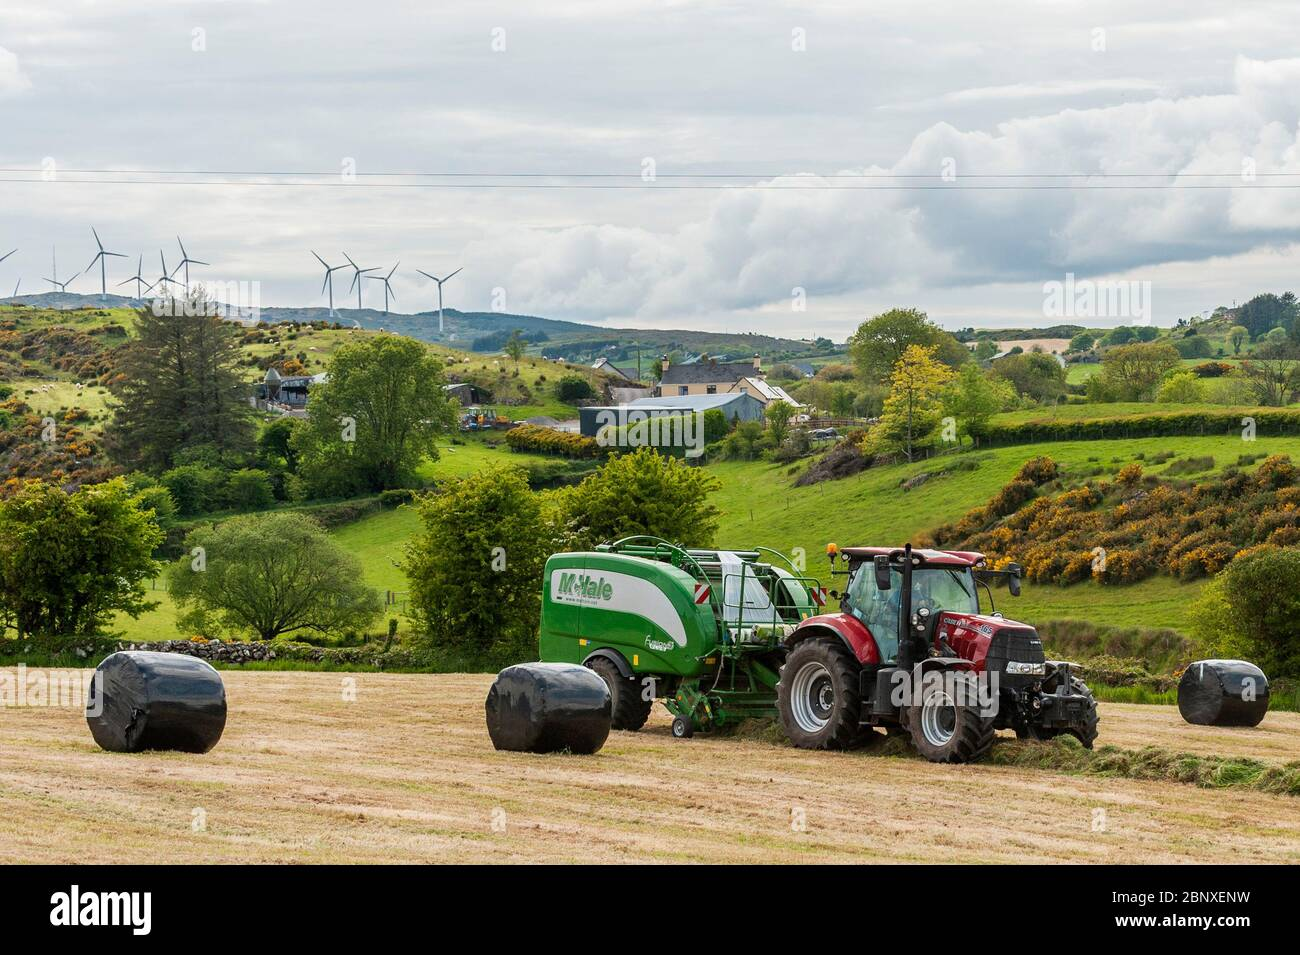 caheragh-north-west-cork-ireland-16th-may-2020-silage-baling-took-place-on-the-farm-of-patrick-collins-in-caheragh-north-today-patrick-hired-jonathan-crowley-contractors-of-bantry-to-bale-the-silage-using-a-case-165-tractor-and-a-mchale-fusion-3-plus-balerthe-silage-will-be-used-for-winter-feed-for-dairy-cows-credit-ag-newsalamy-live-news-2BNXENW.jpg